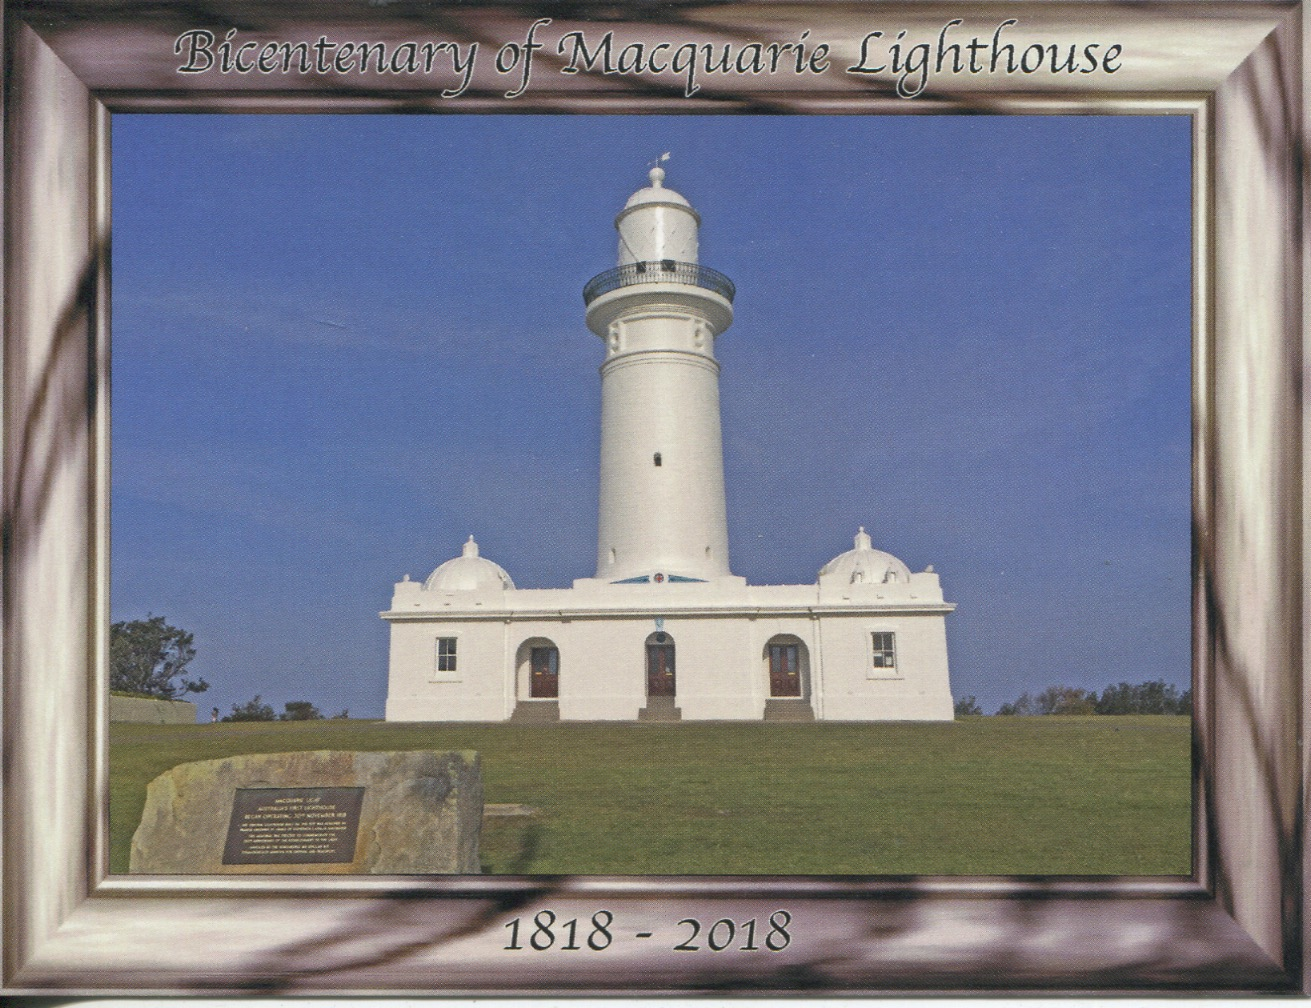 Bicentenary of Macquarie Lighthouse (NSW - Australia)